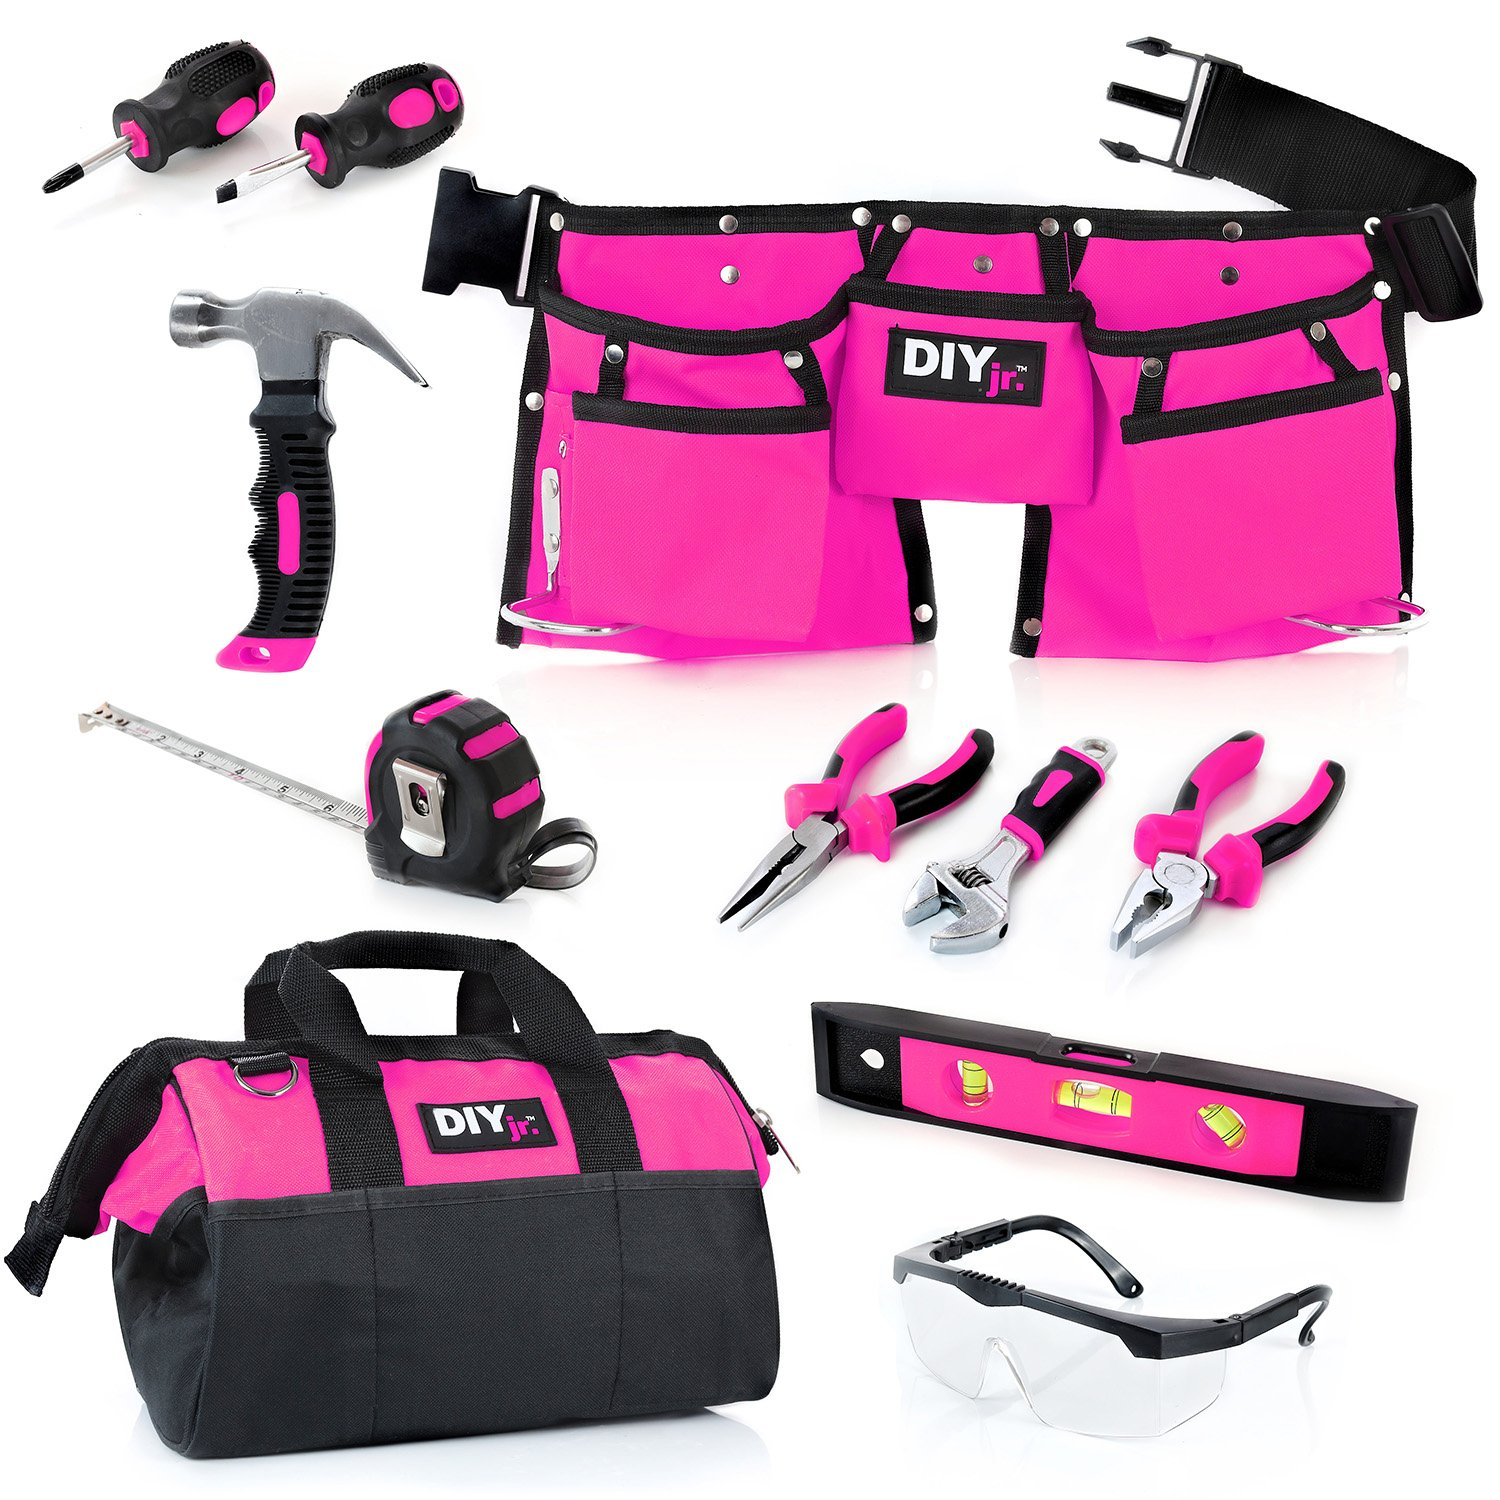 My First Tool Set - PINK by DIY Jr. – Real Tool Set for Kids Pink Tools for Girls Toolbelt Child-sized Tools Complete Tool Set for Girls Tools for Small Hands by DIY Jr.